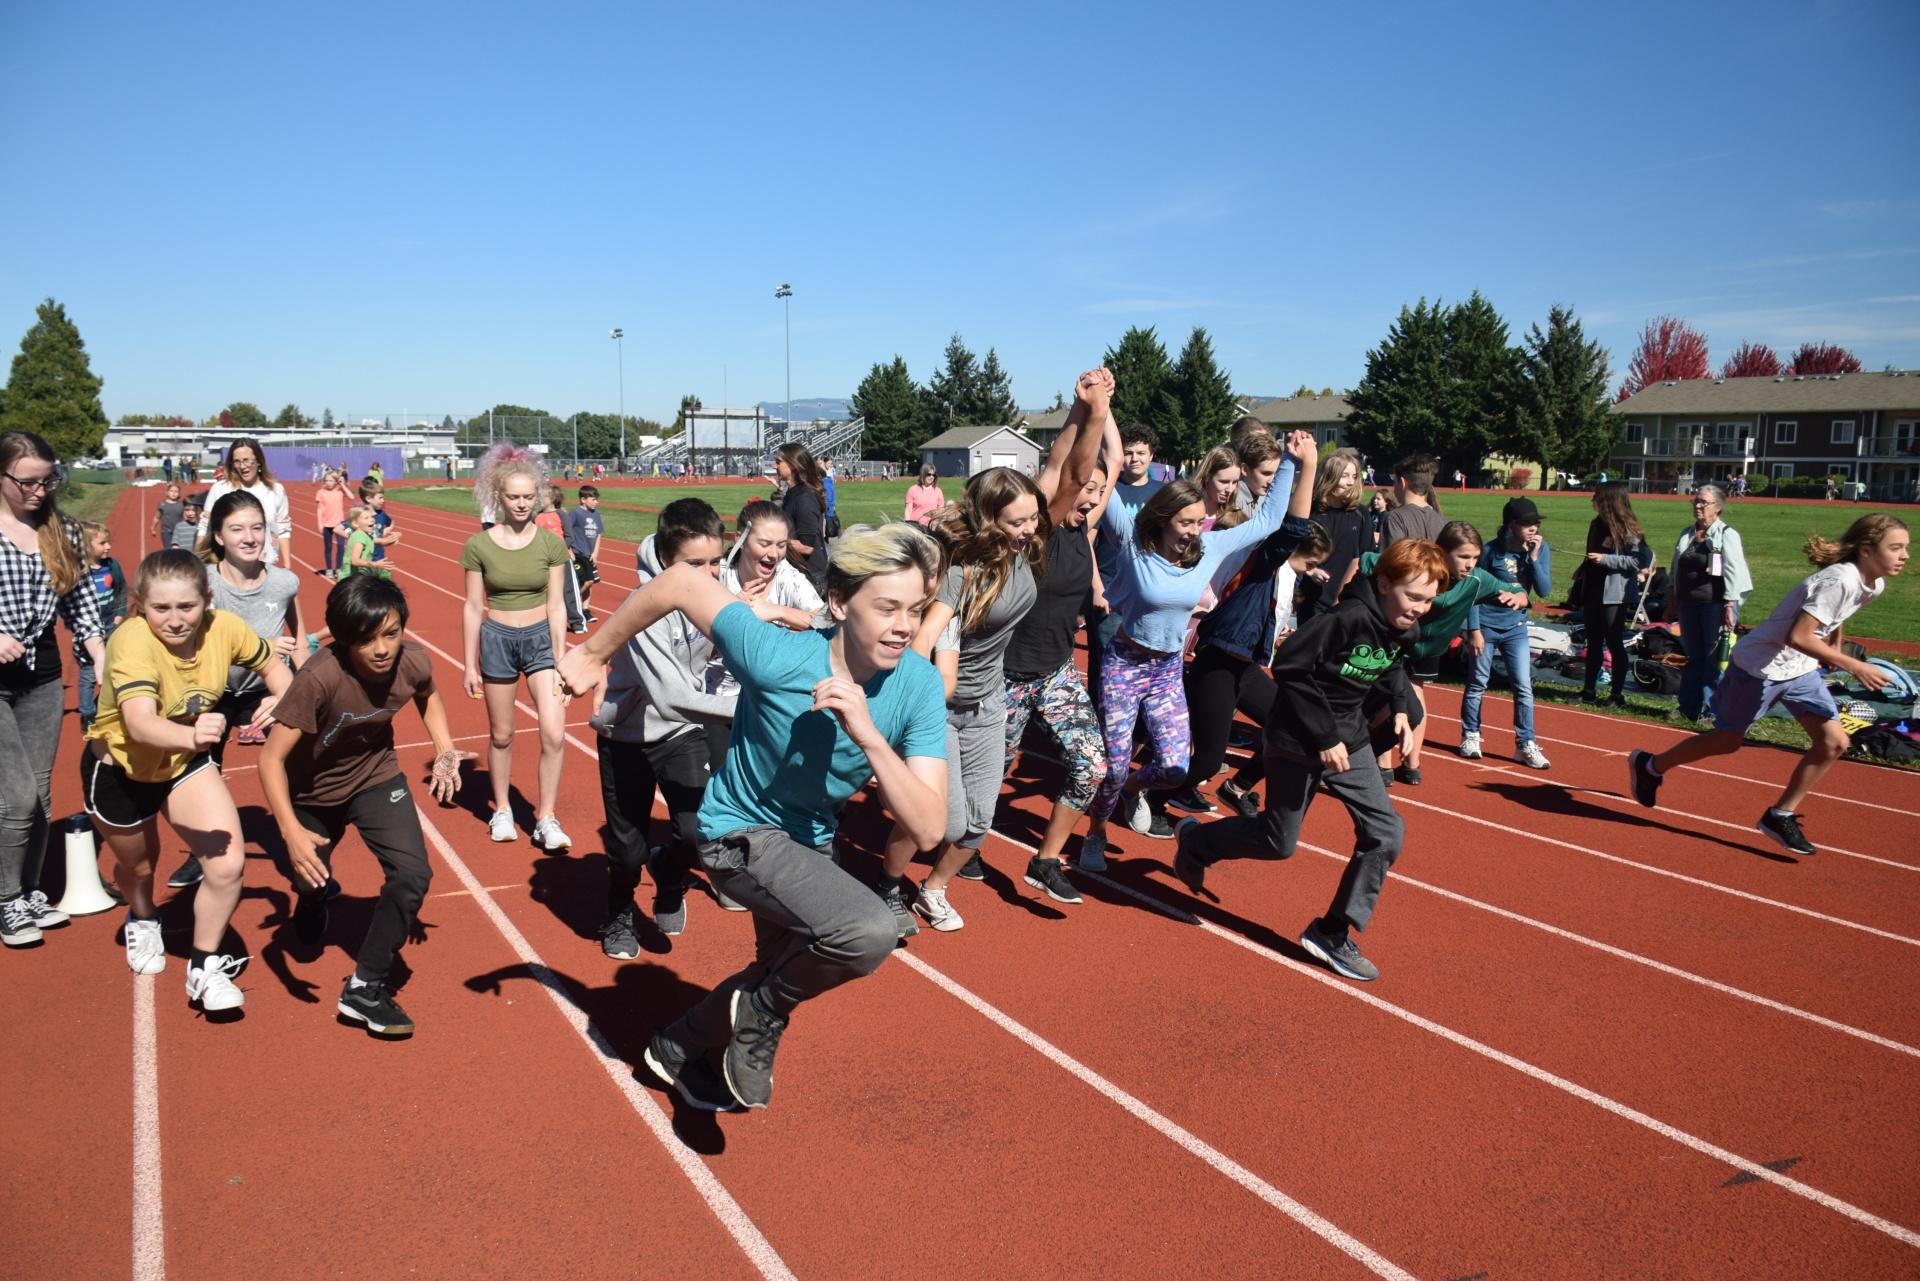 Eighth grade students at Thursday's Walk-a-thon [click image to see entire picture]